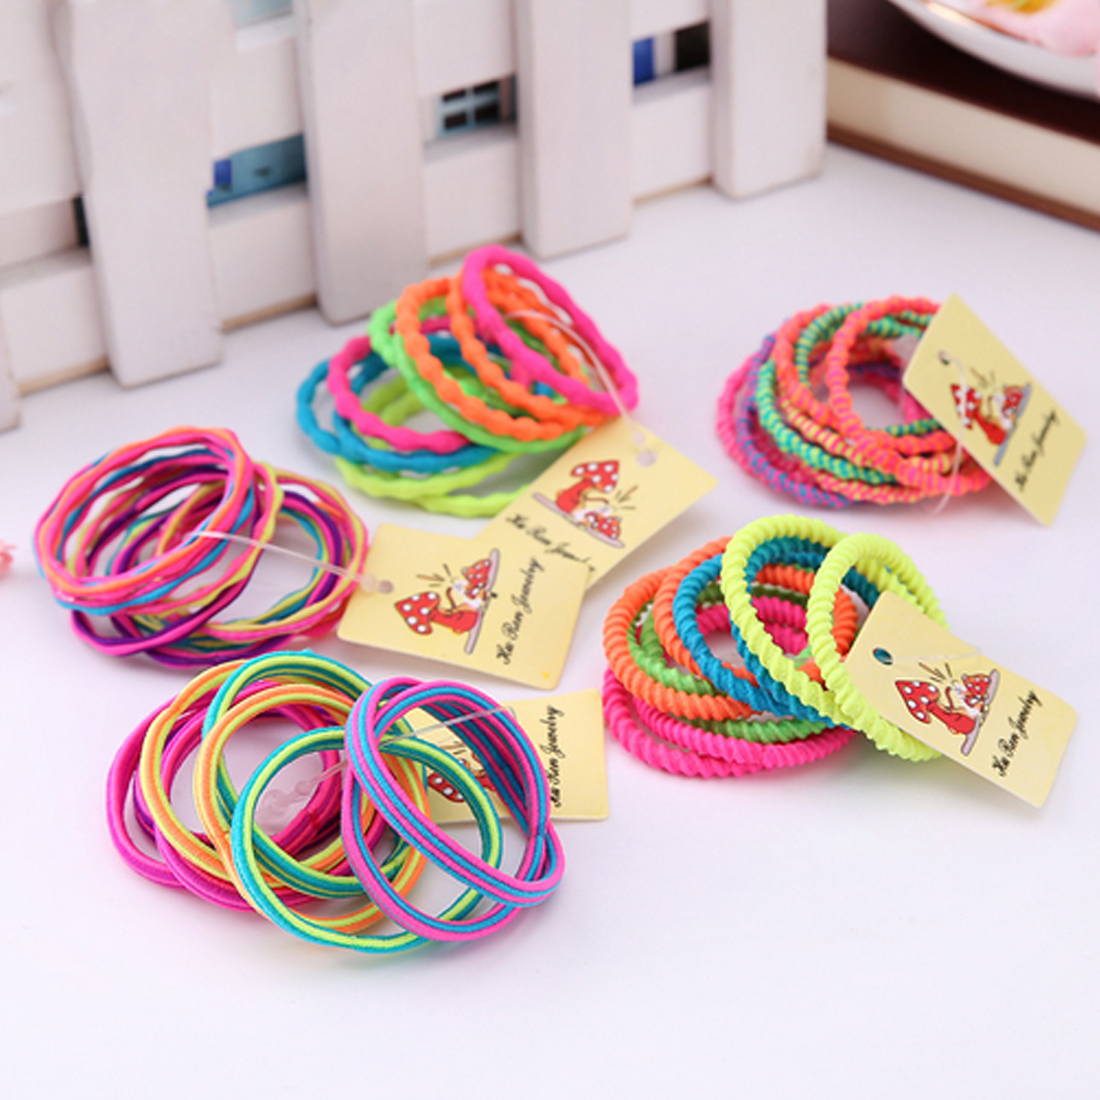 10PCS/Lot Girls Colorful Elastic Hair Band Lovely Hair Ropes Ponytail Holder Scrunchie Gum Headwear Hair Accessories metting joura vintage bohemian ethnic tribal flower print stone handmade elastic headband hair band design hair accessories